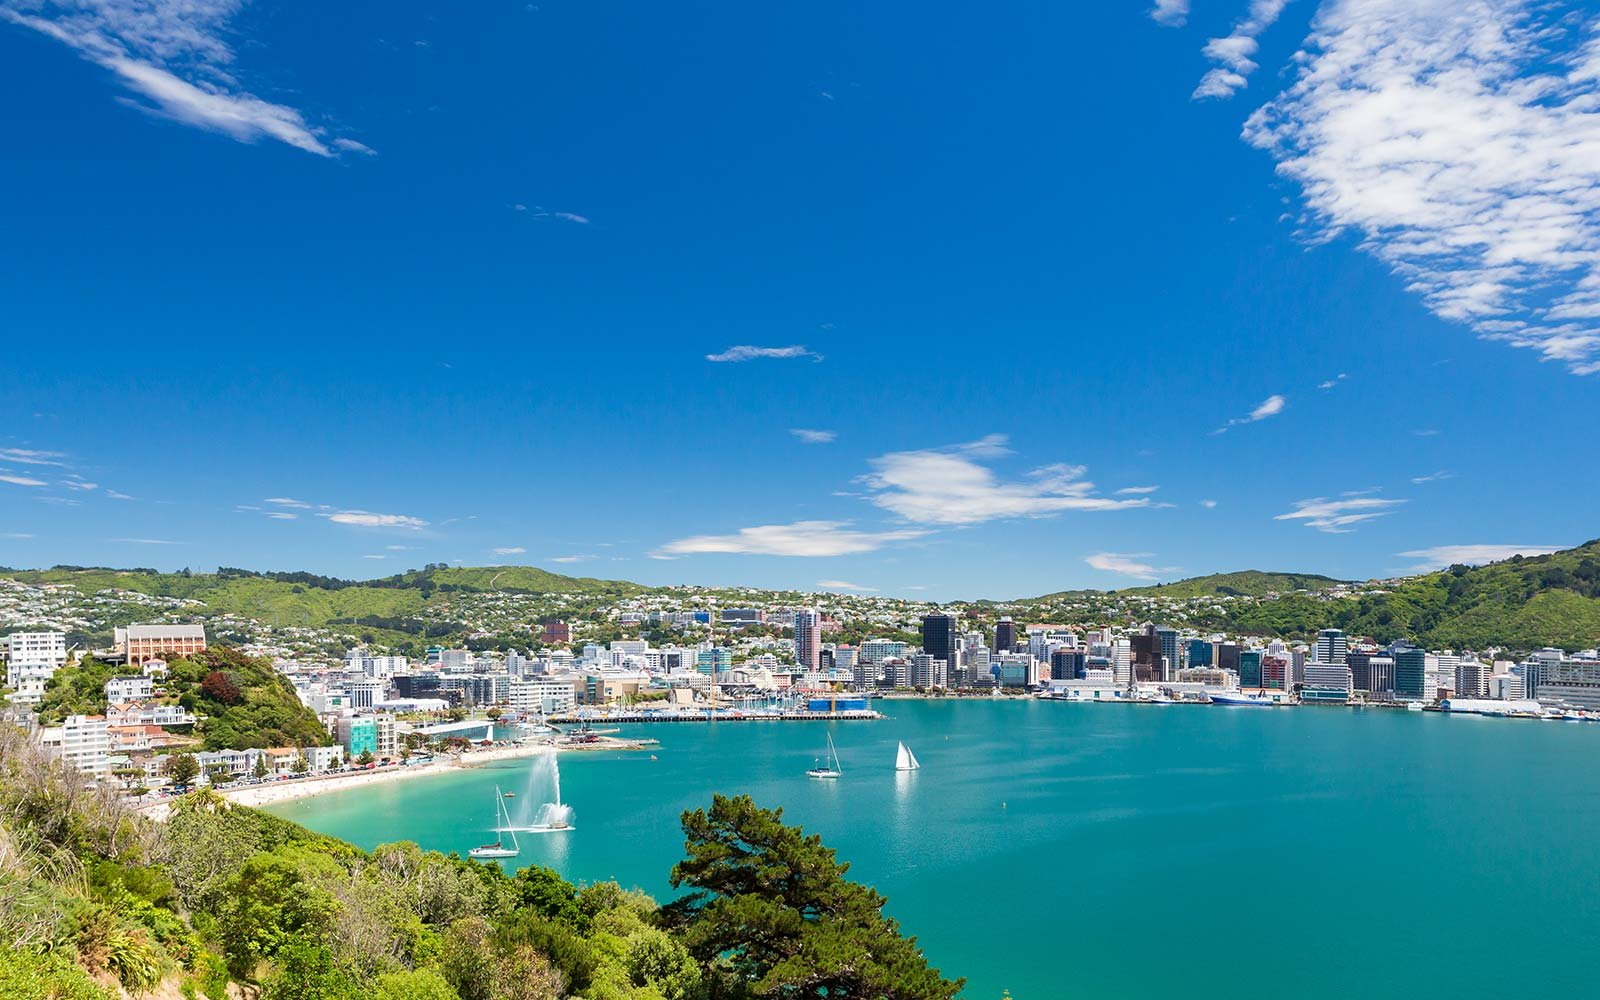 New Zealand will pay for your vacation if you agree to an interview